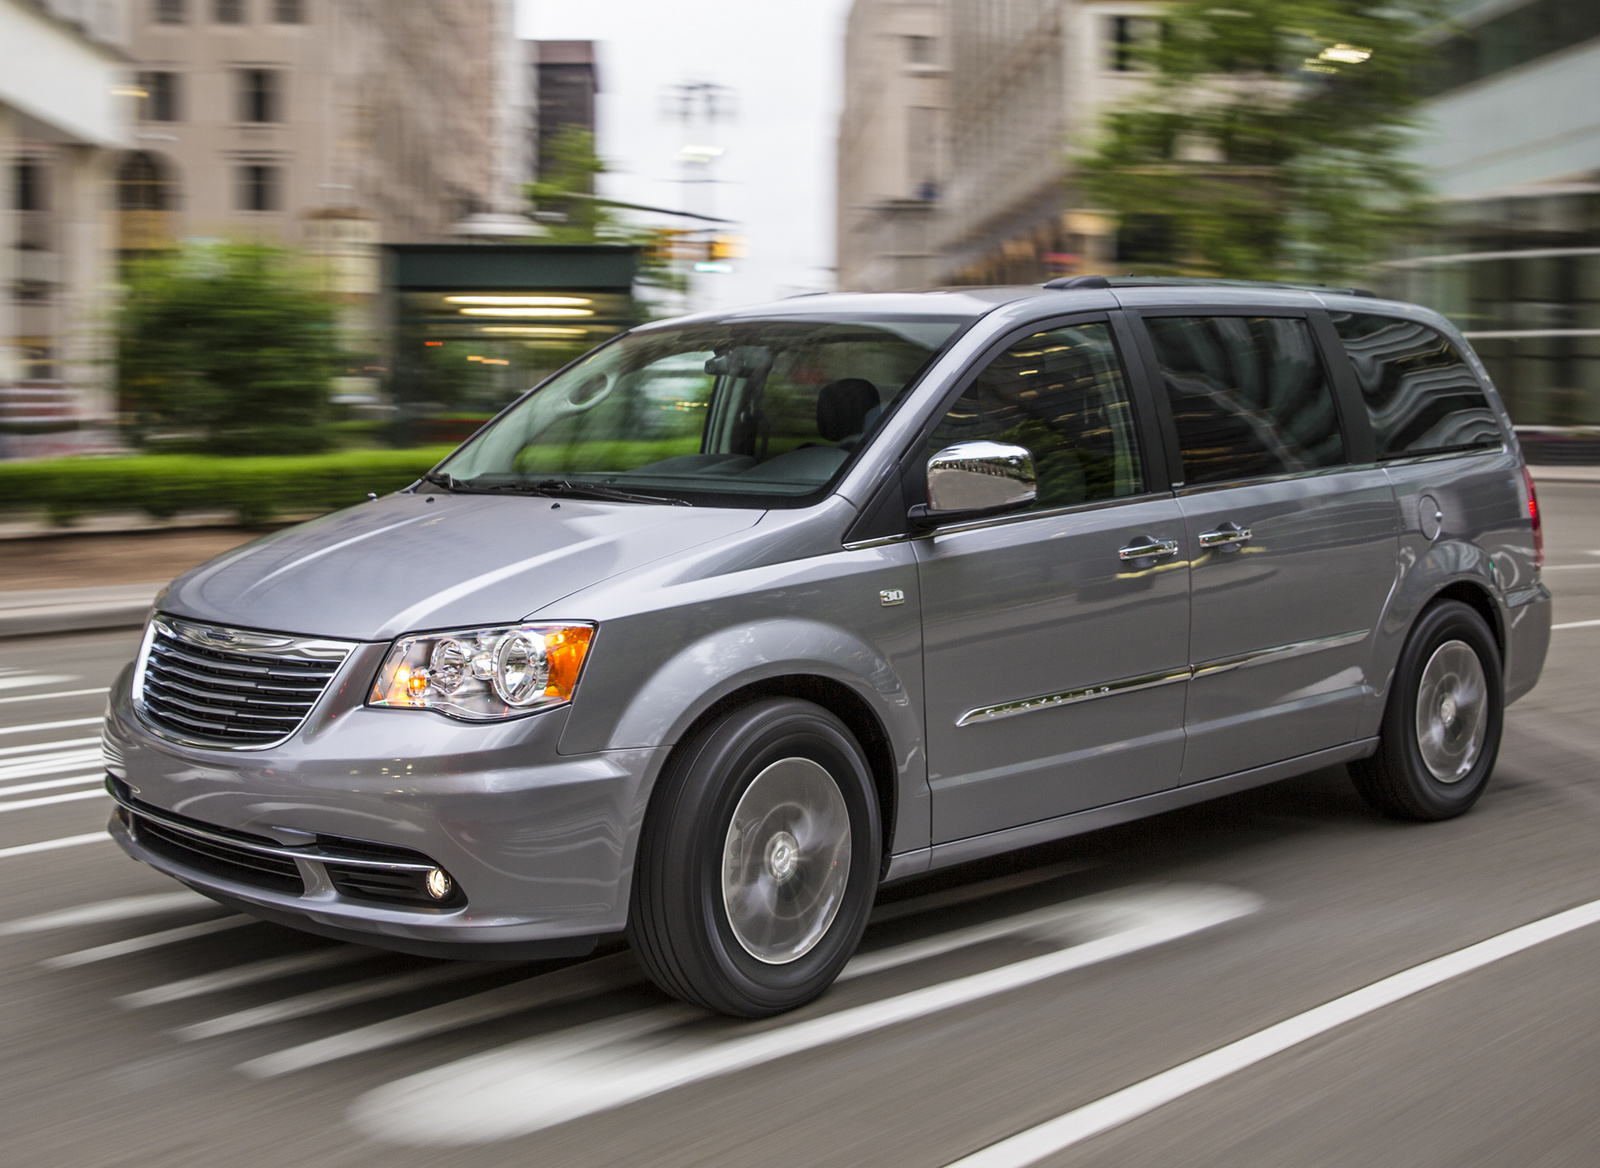 chrysler town & country pictures